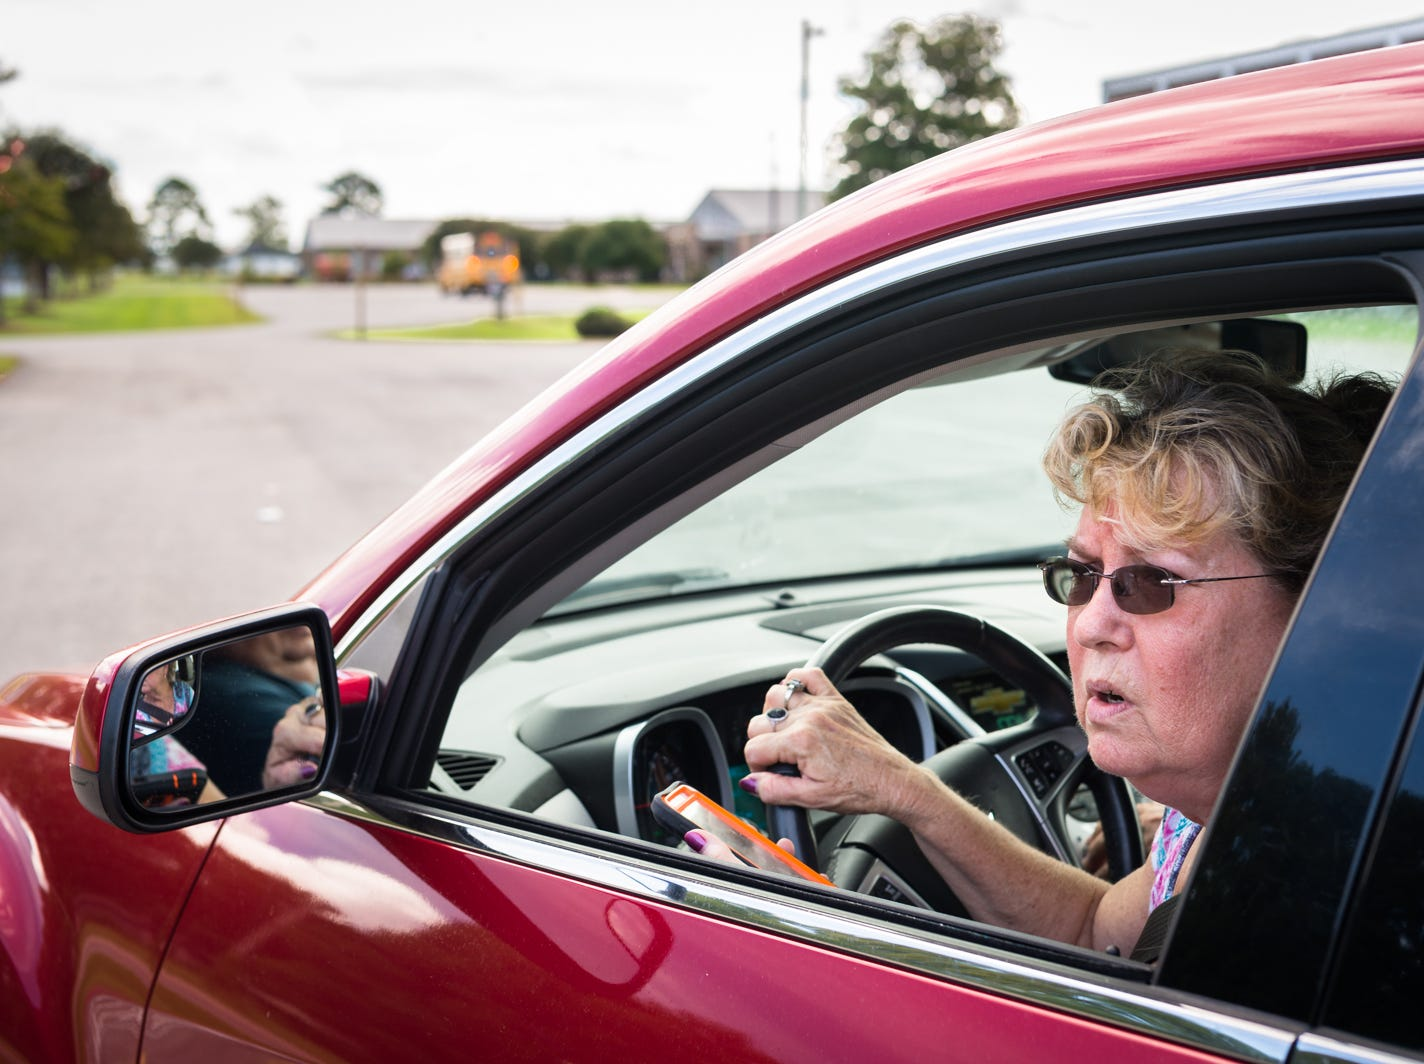 Elizabeth Gurganus, of Swan Quarter, prepares to evacuate to Tyner, outside Elizabeth City, with her husband before Hurricane Florence makes landfall, Sept. 12, 2018. A storm surge of about three to six feet is expected for Swan Quarter, and around six feet for Ocracoke Island with 12-20 inches of rainfall for the entire area. Hyde county as well as several surrounding counties are under mandatory evacuation.